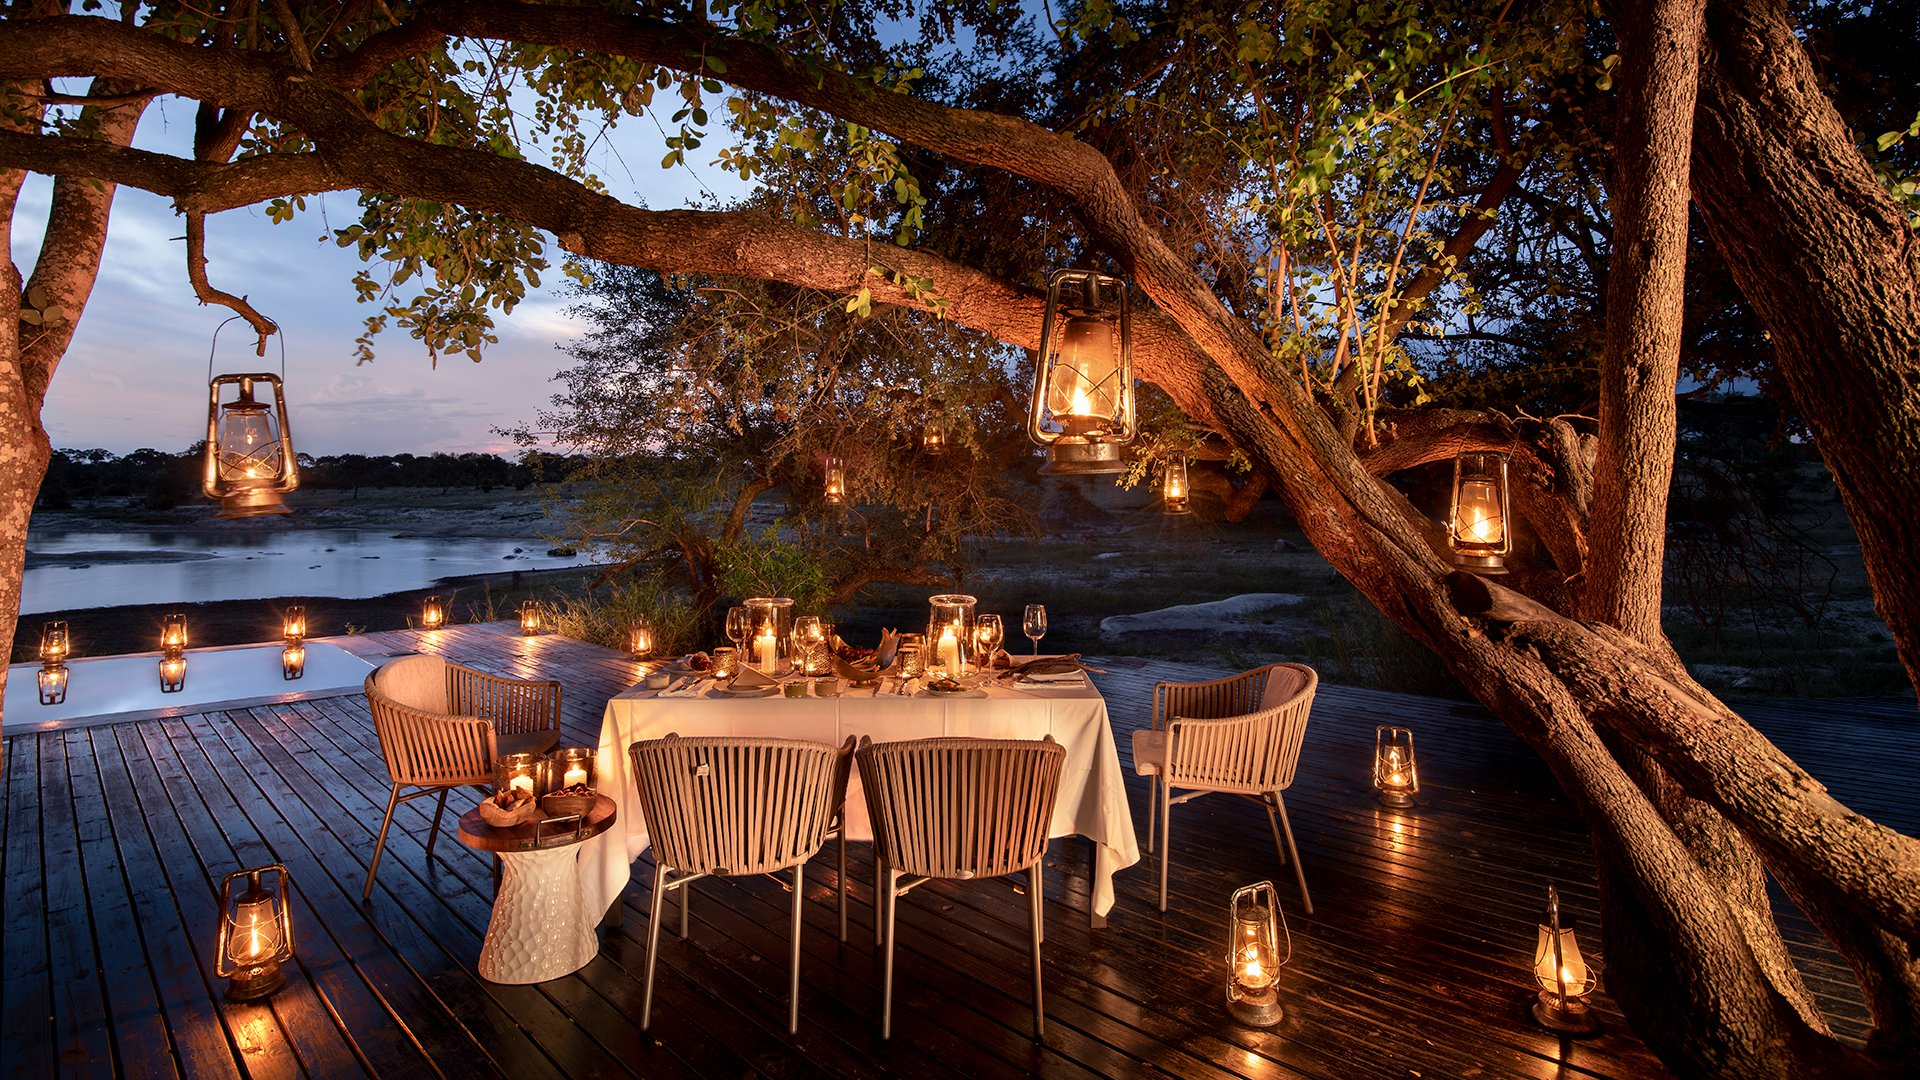 Chitwa-Chitwa-Top-5-Safari-Lodge-Specials-during-Covid-19-for-South-African-Resident